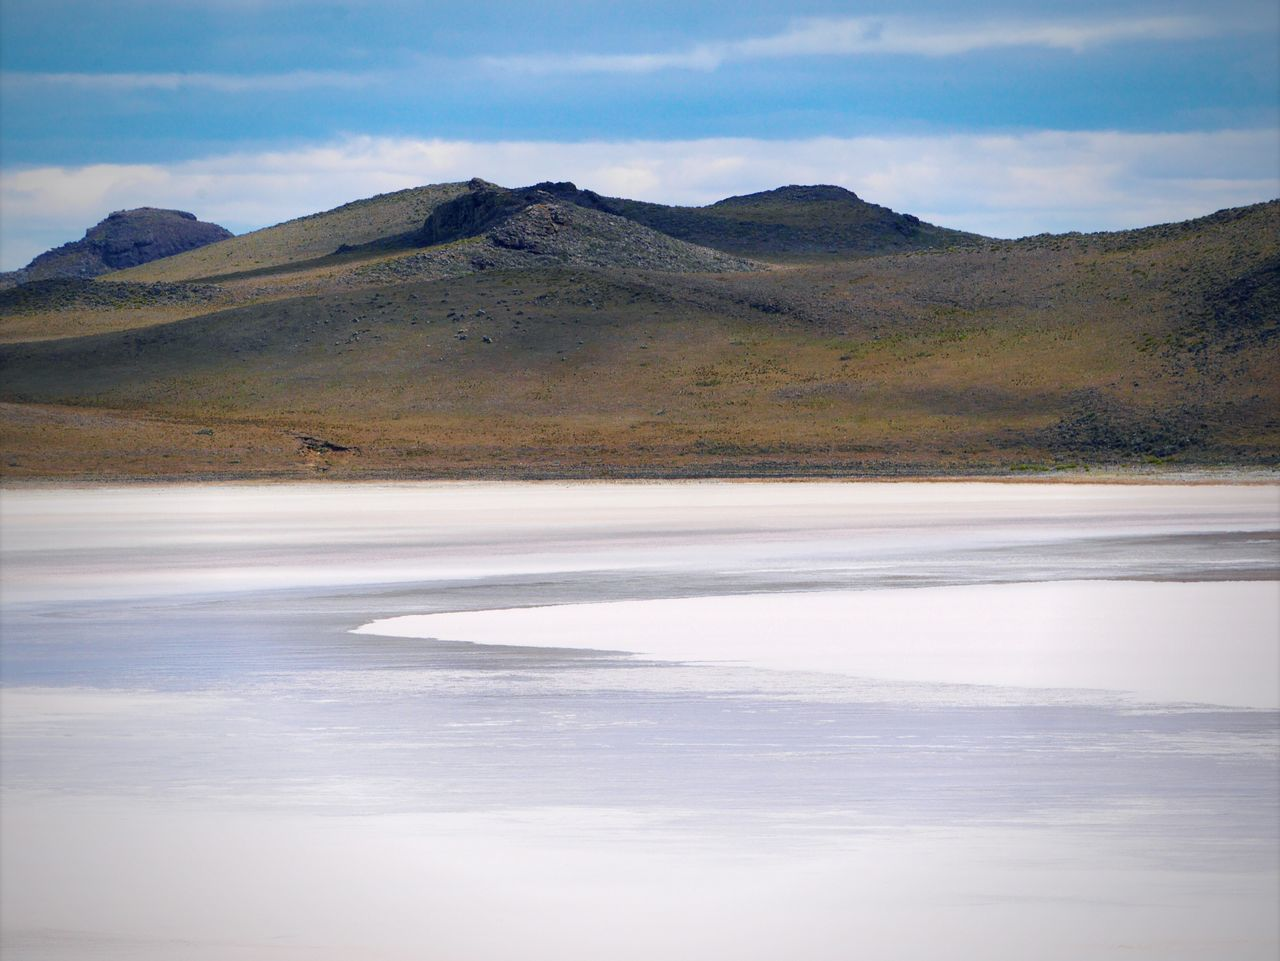 Nature Beauty In Nature Scenics Tranquil Scene Landscape Tranquility Sky Non-urban Scene Mountain Desert Salt Flat Outdoors Day No People Idyllic Cold Temperature Salt Lake Sand Patagonia Chilena Patagonia Chile